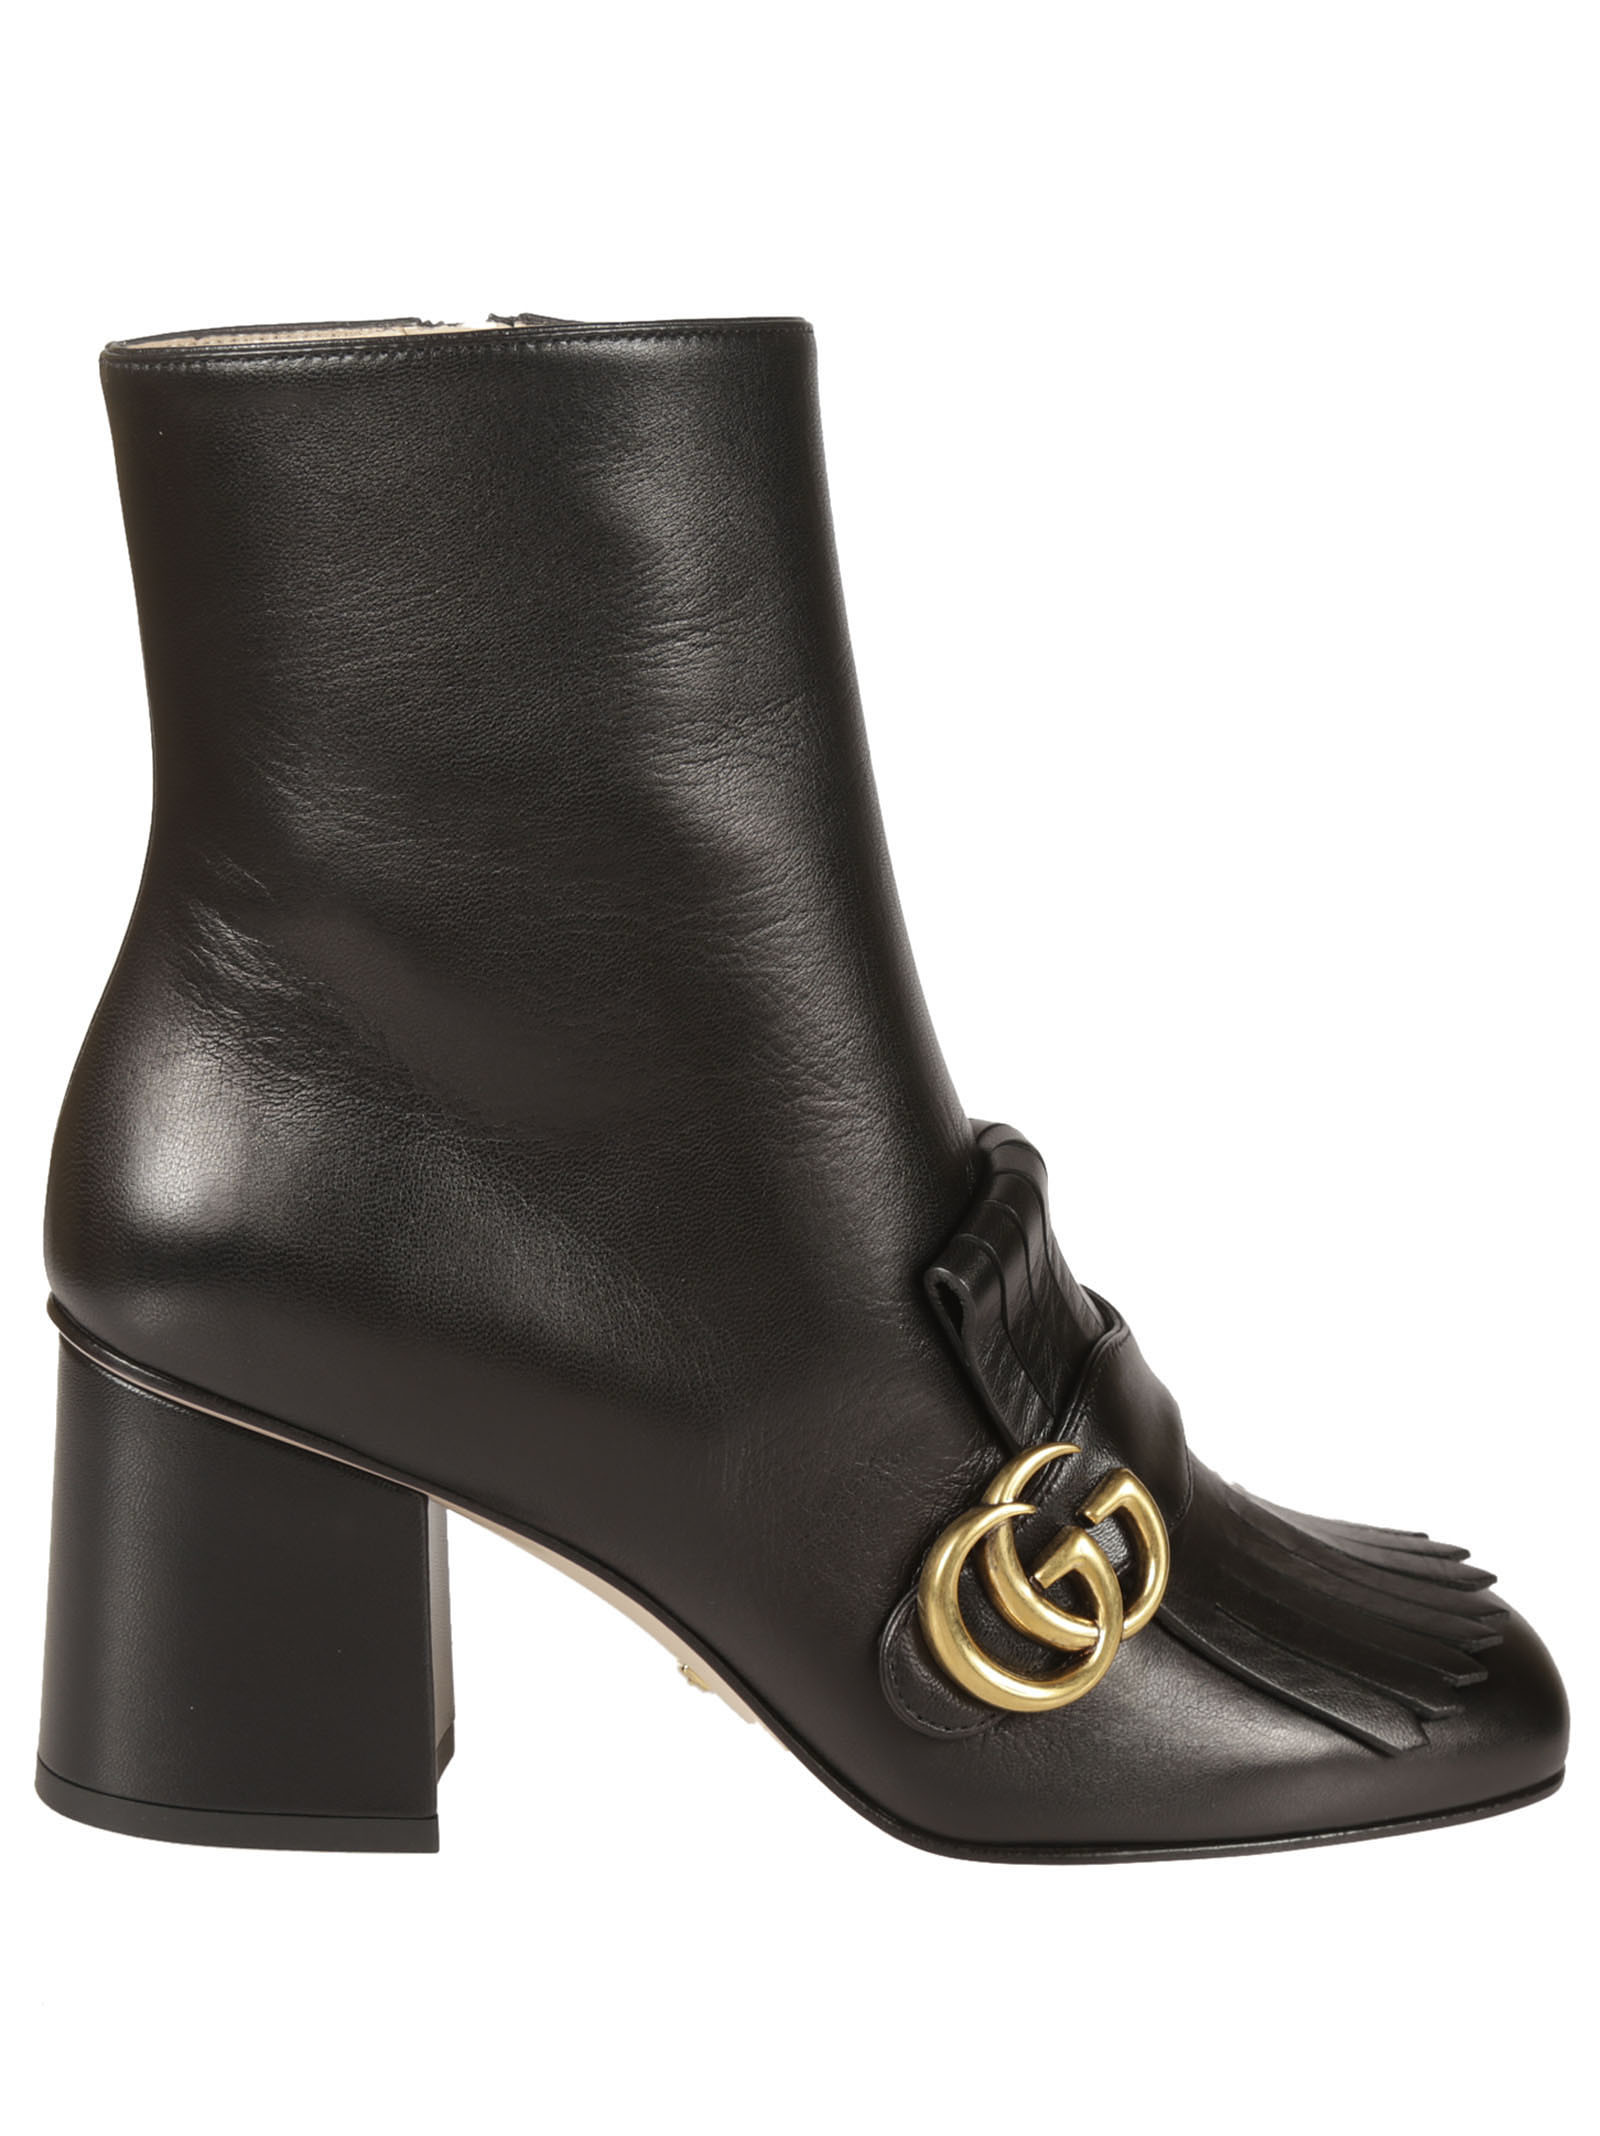 Leather Ankle Boots from Gucci: Black Leather Ankle Boots with Double G detail at front, Almond toe, Mid heel and Zip fastening at side.